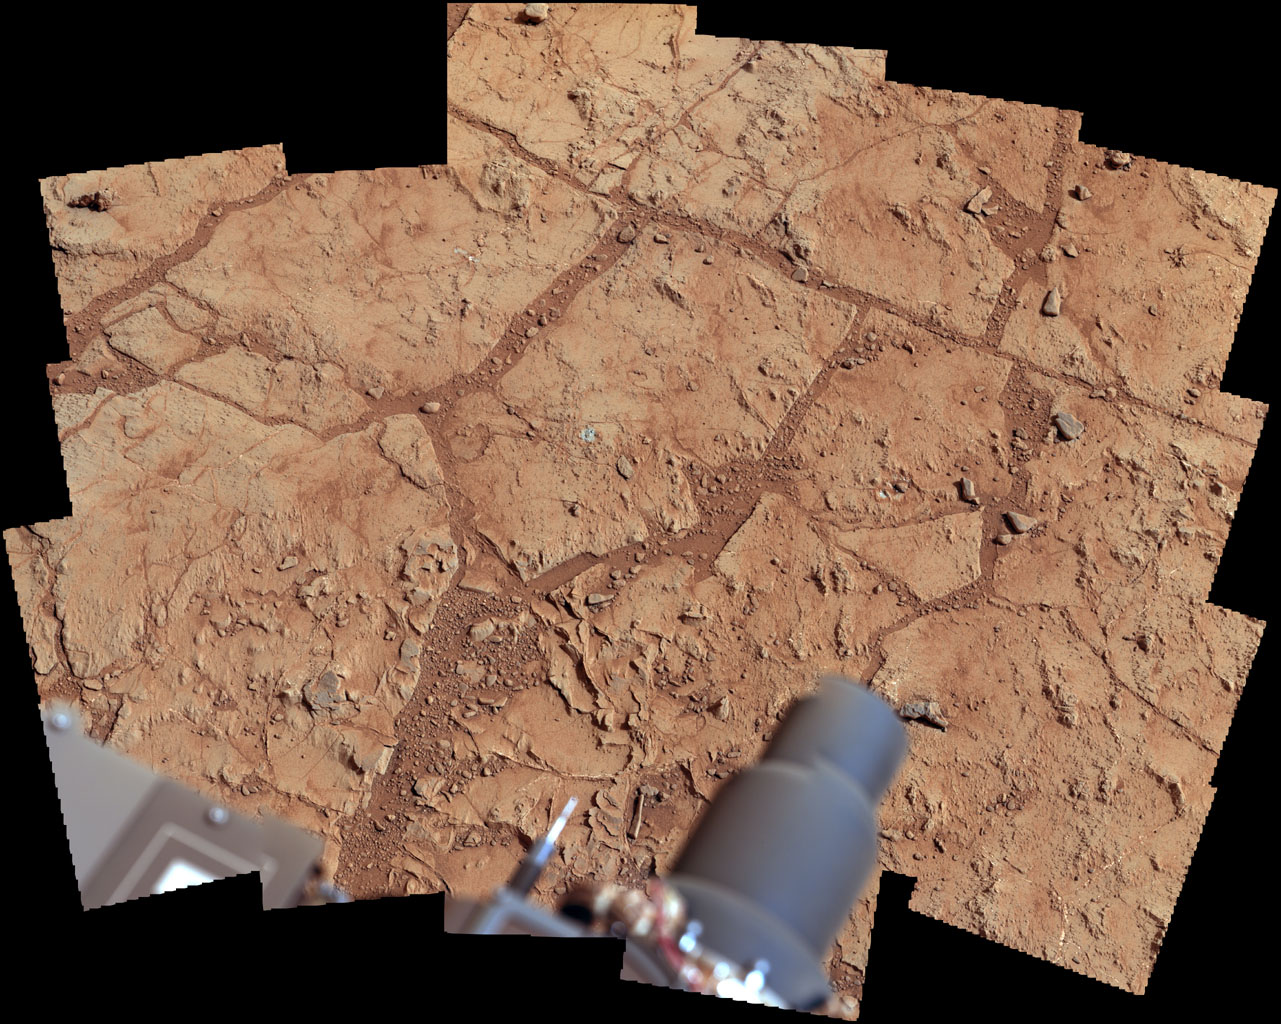 NASA's Mars rover Curiosity used its Mast Camera (Mastcam) to take the images combined into this mosaic of the drill area, called 'John Klein,' where the rover ultimately performed its first sample drilling.